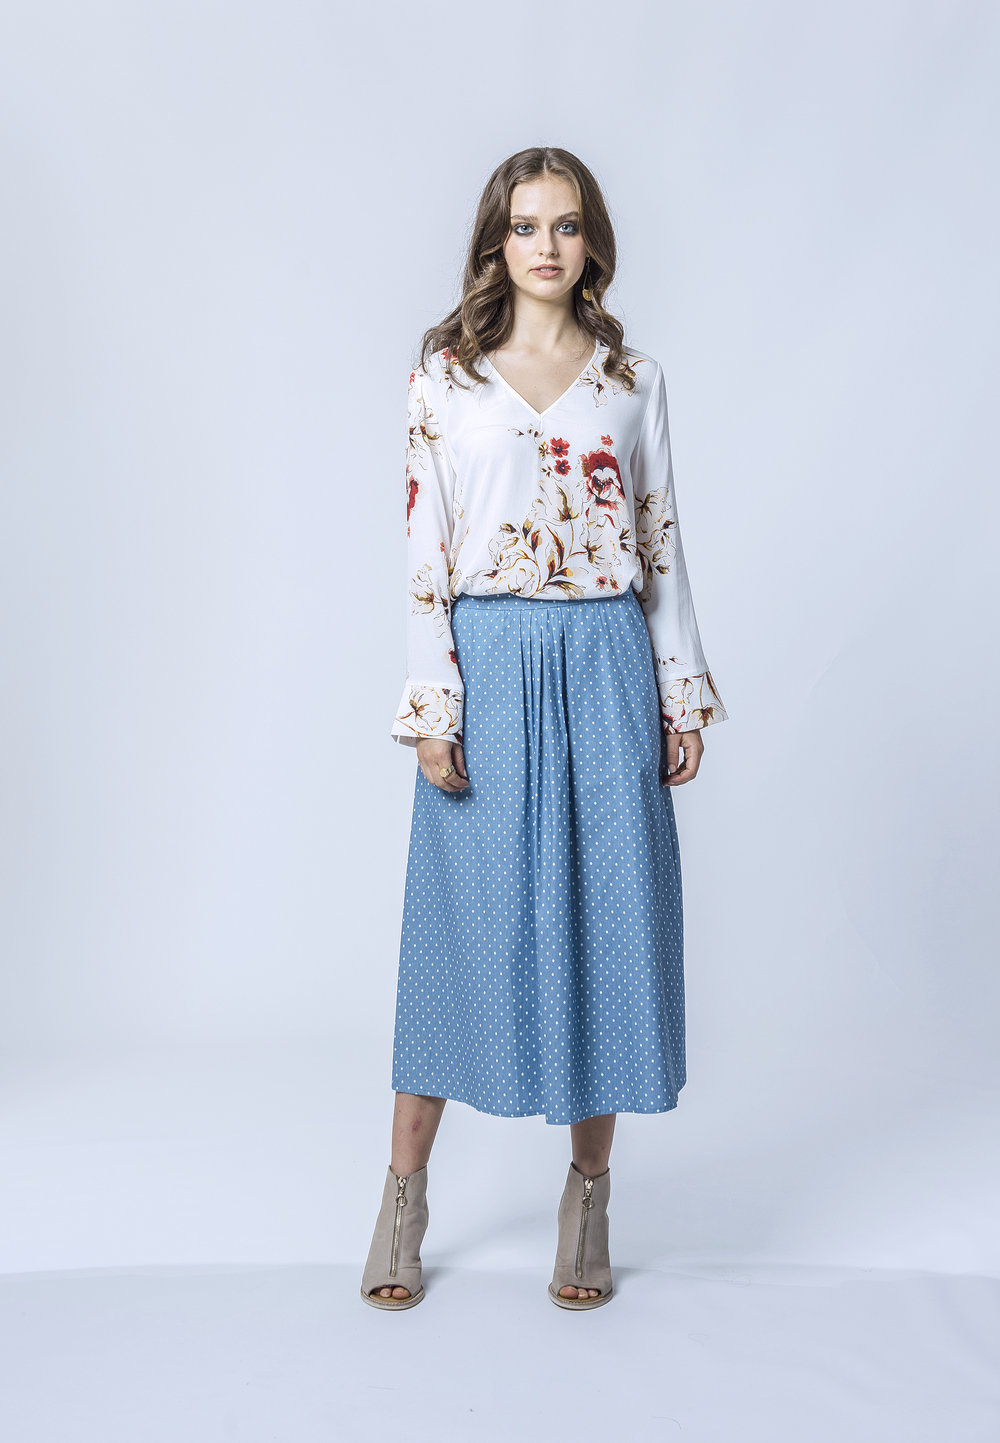 Michelle Top & Meredith Skirt